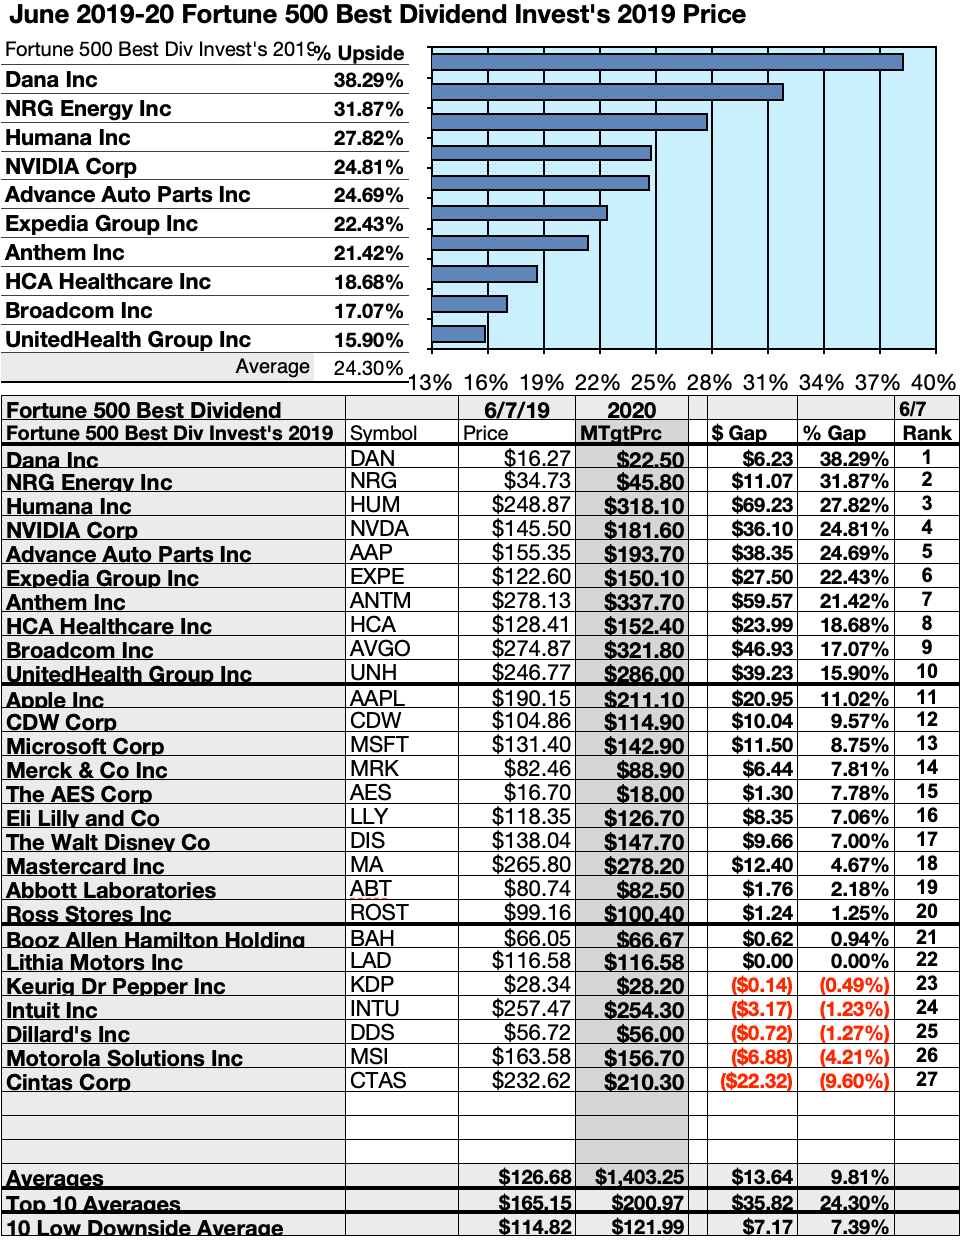 Best Low Risk Investments 2020 These 27 Fortune 500 Dividend Stocks Made The Best Total Returns